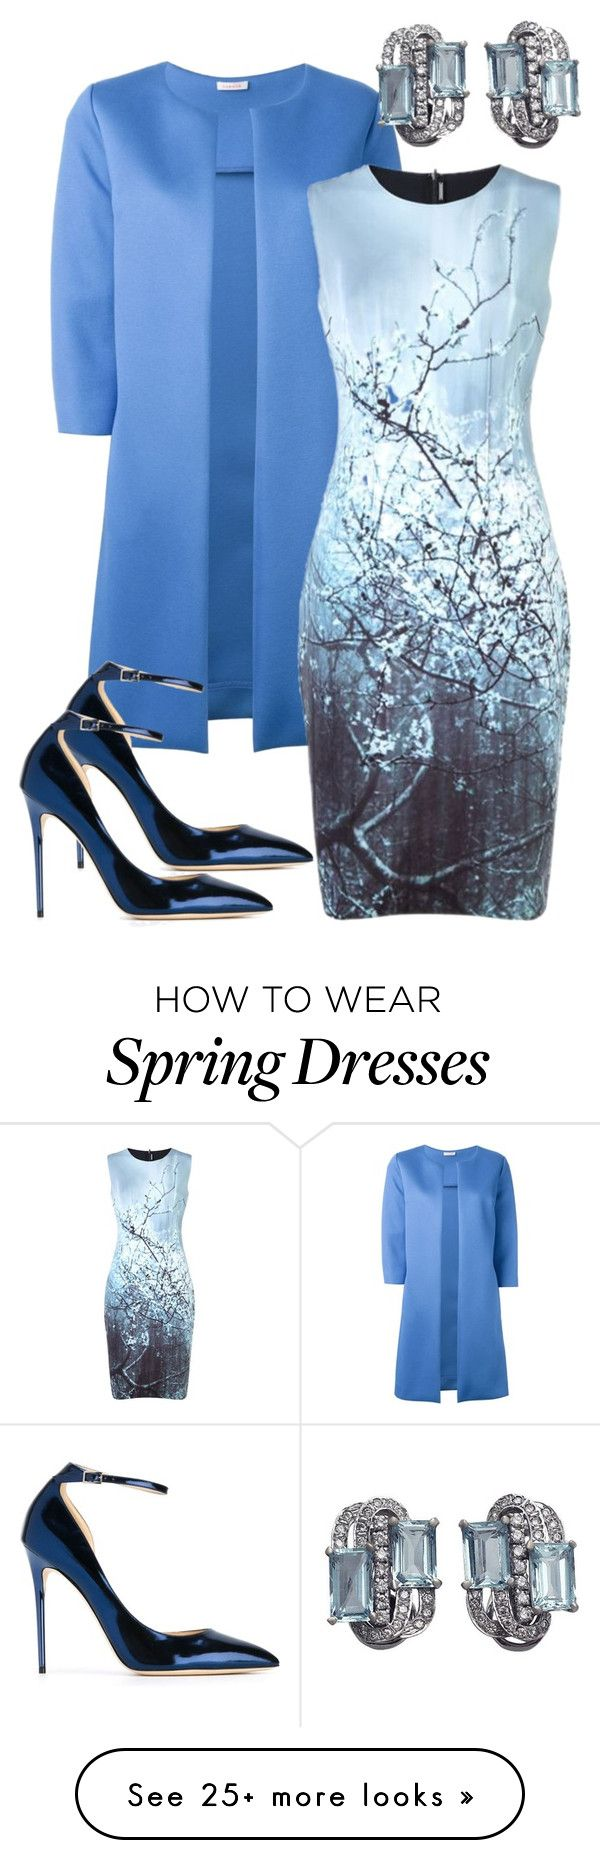 """""""Spring wedding guest"""" by natalie53-1 on Polyvore featuring P.A.R.O.S.H., Elie Tahari and Jimmy Choo"""